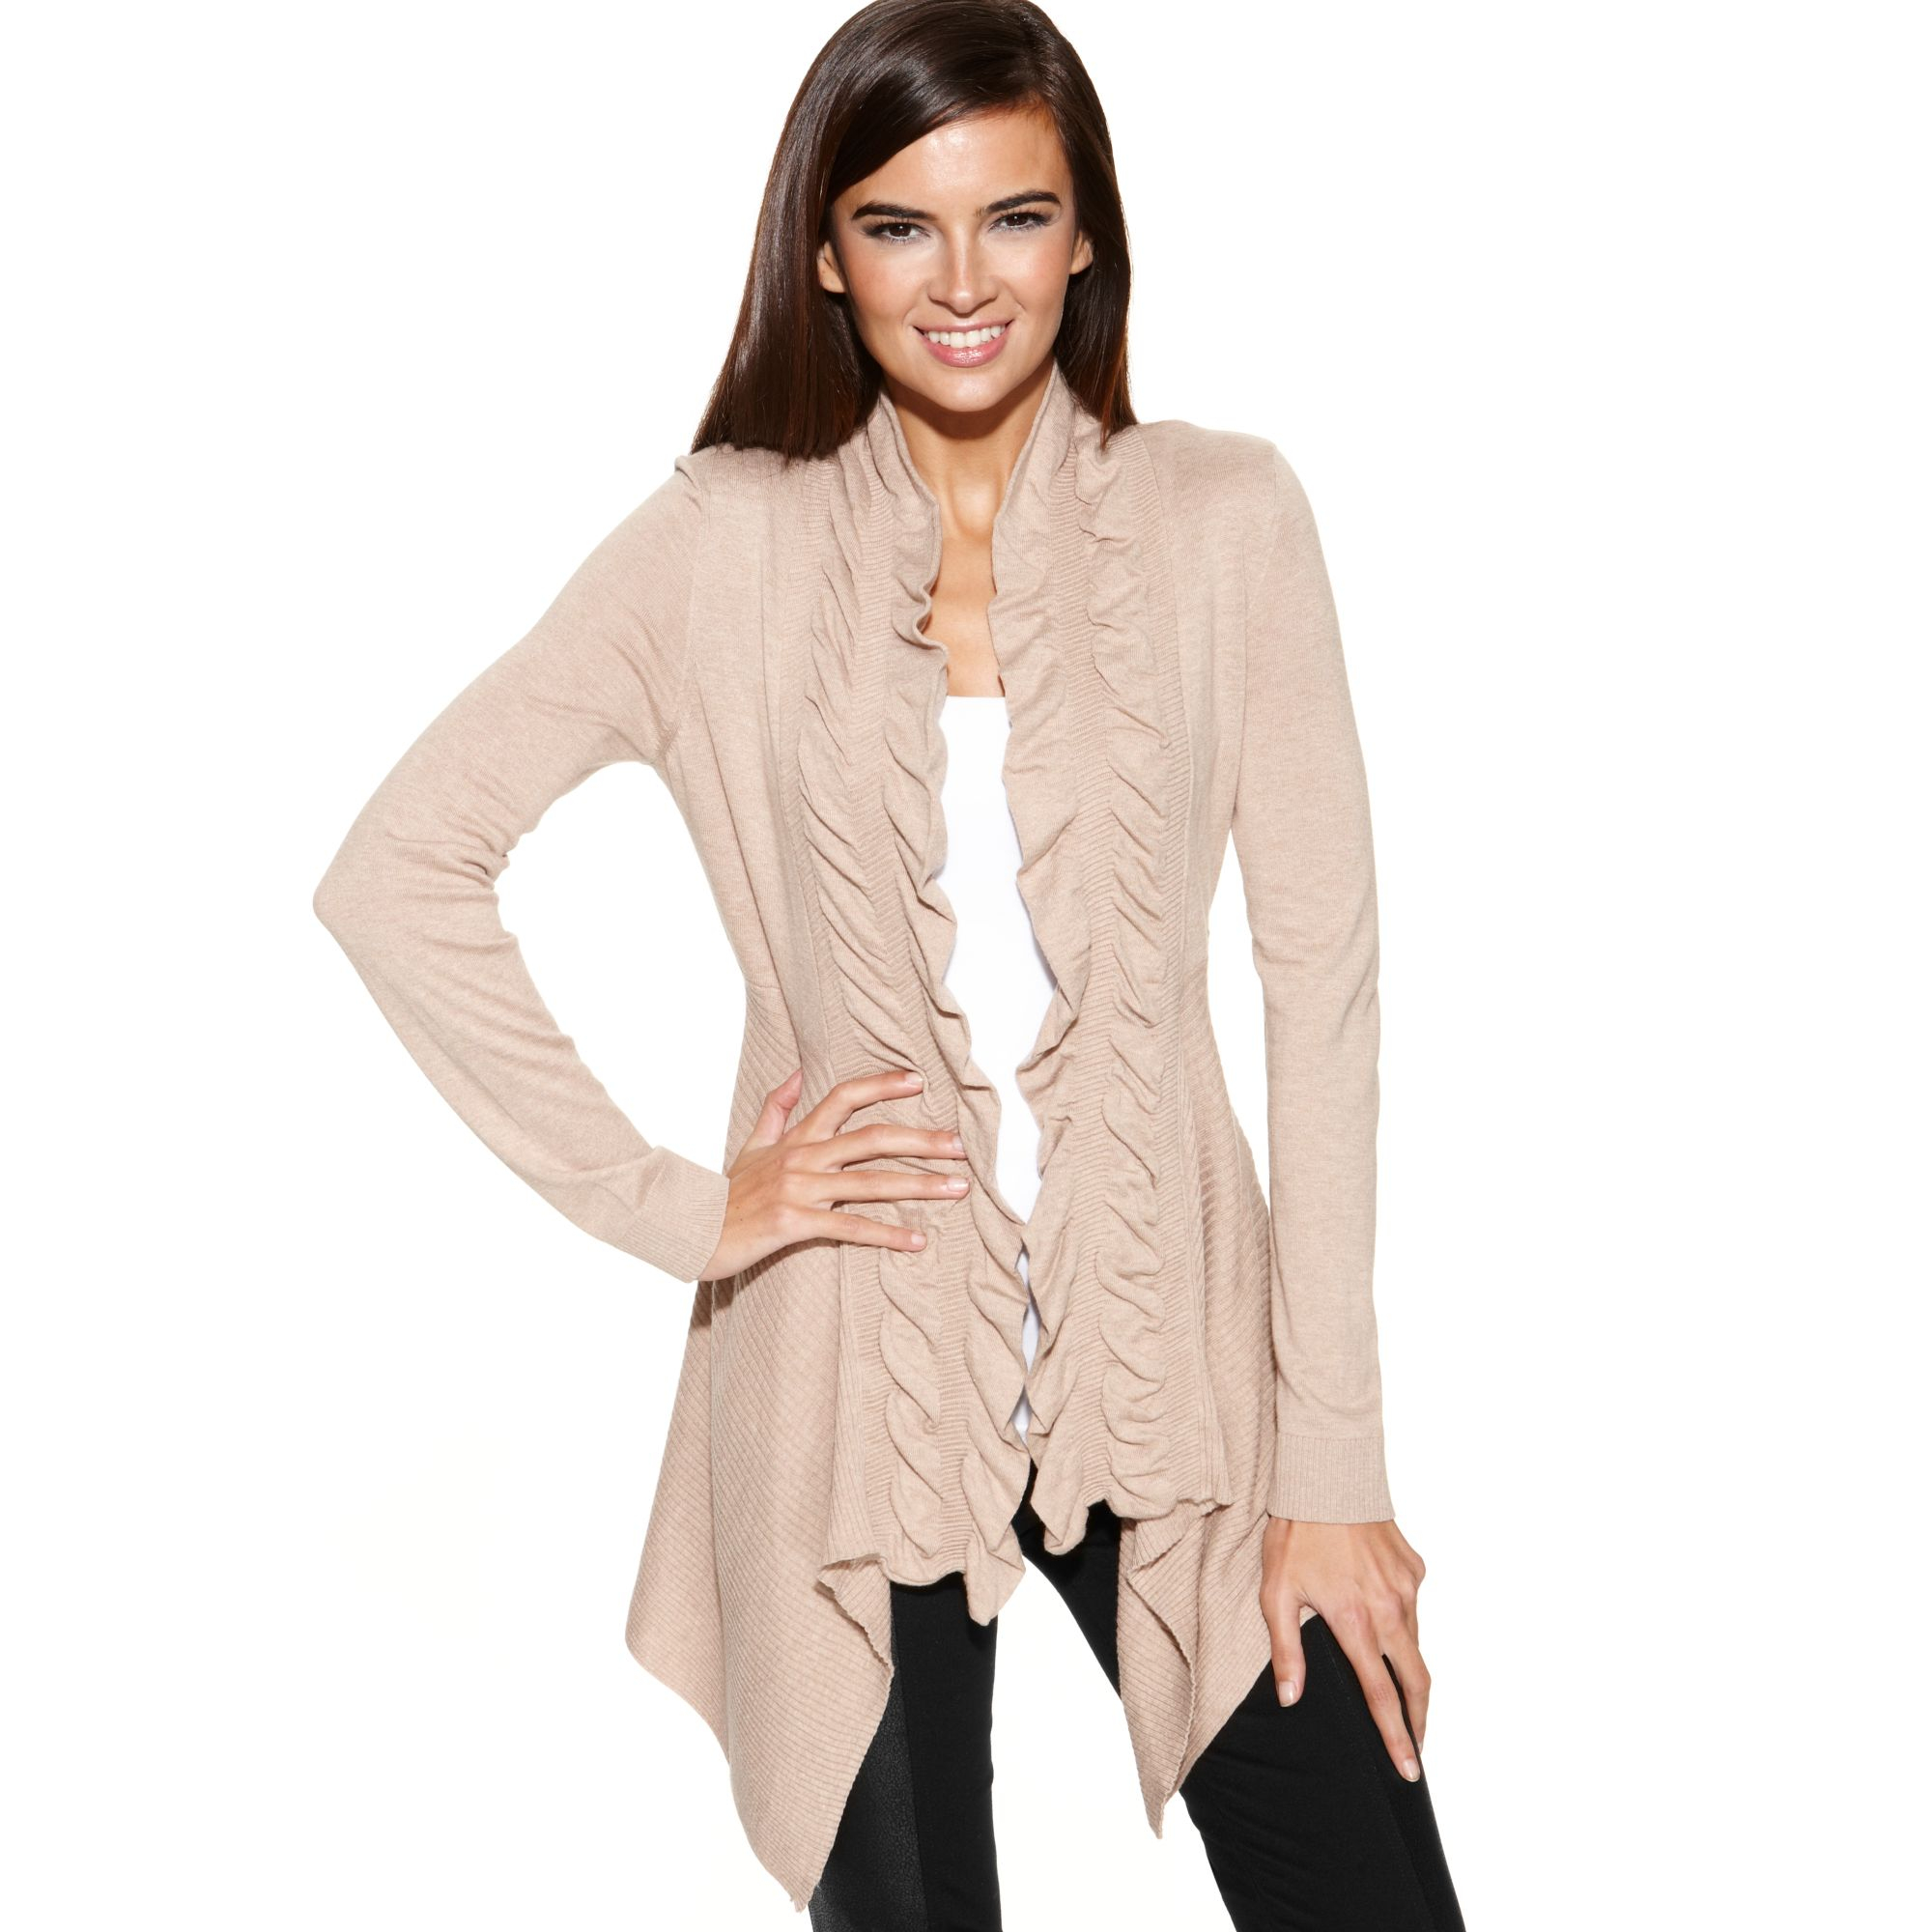 c4230c7e937 INC International Concepts Natural Ruffletrim Openfront Cardigan